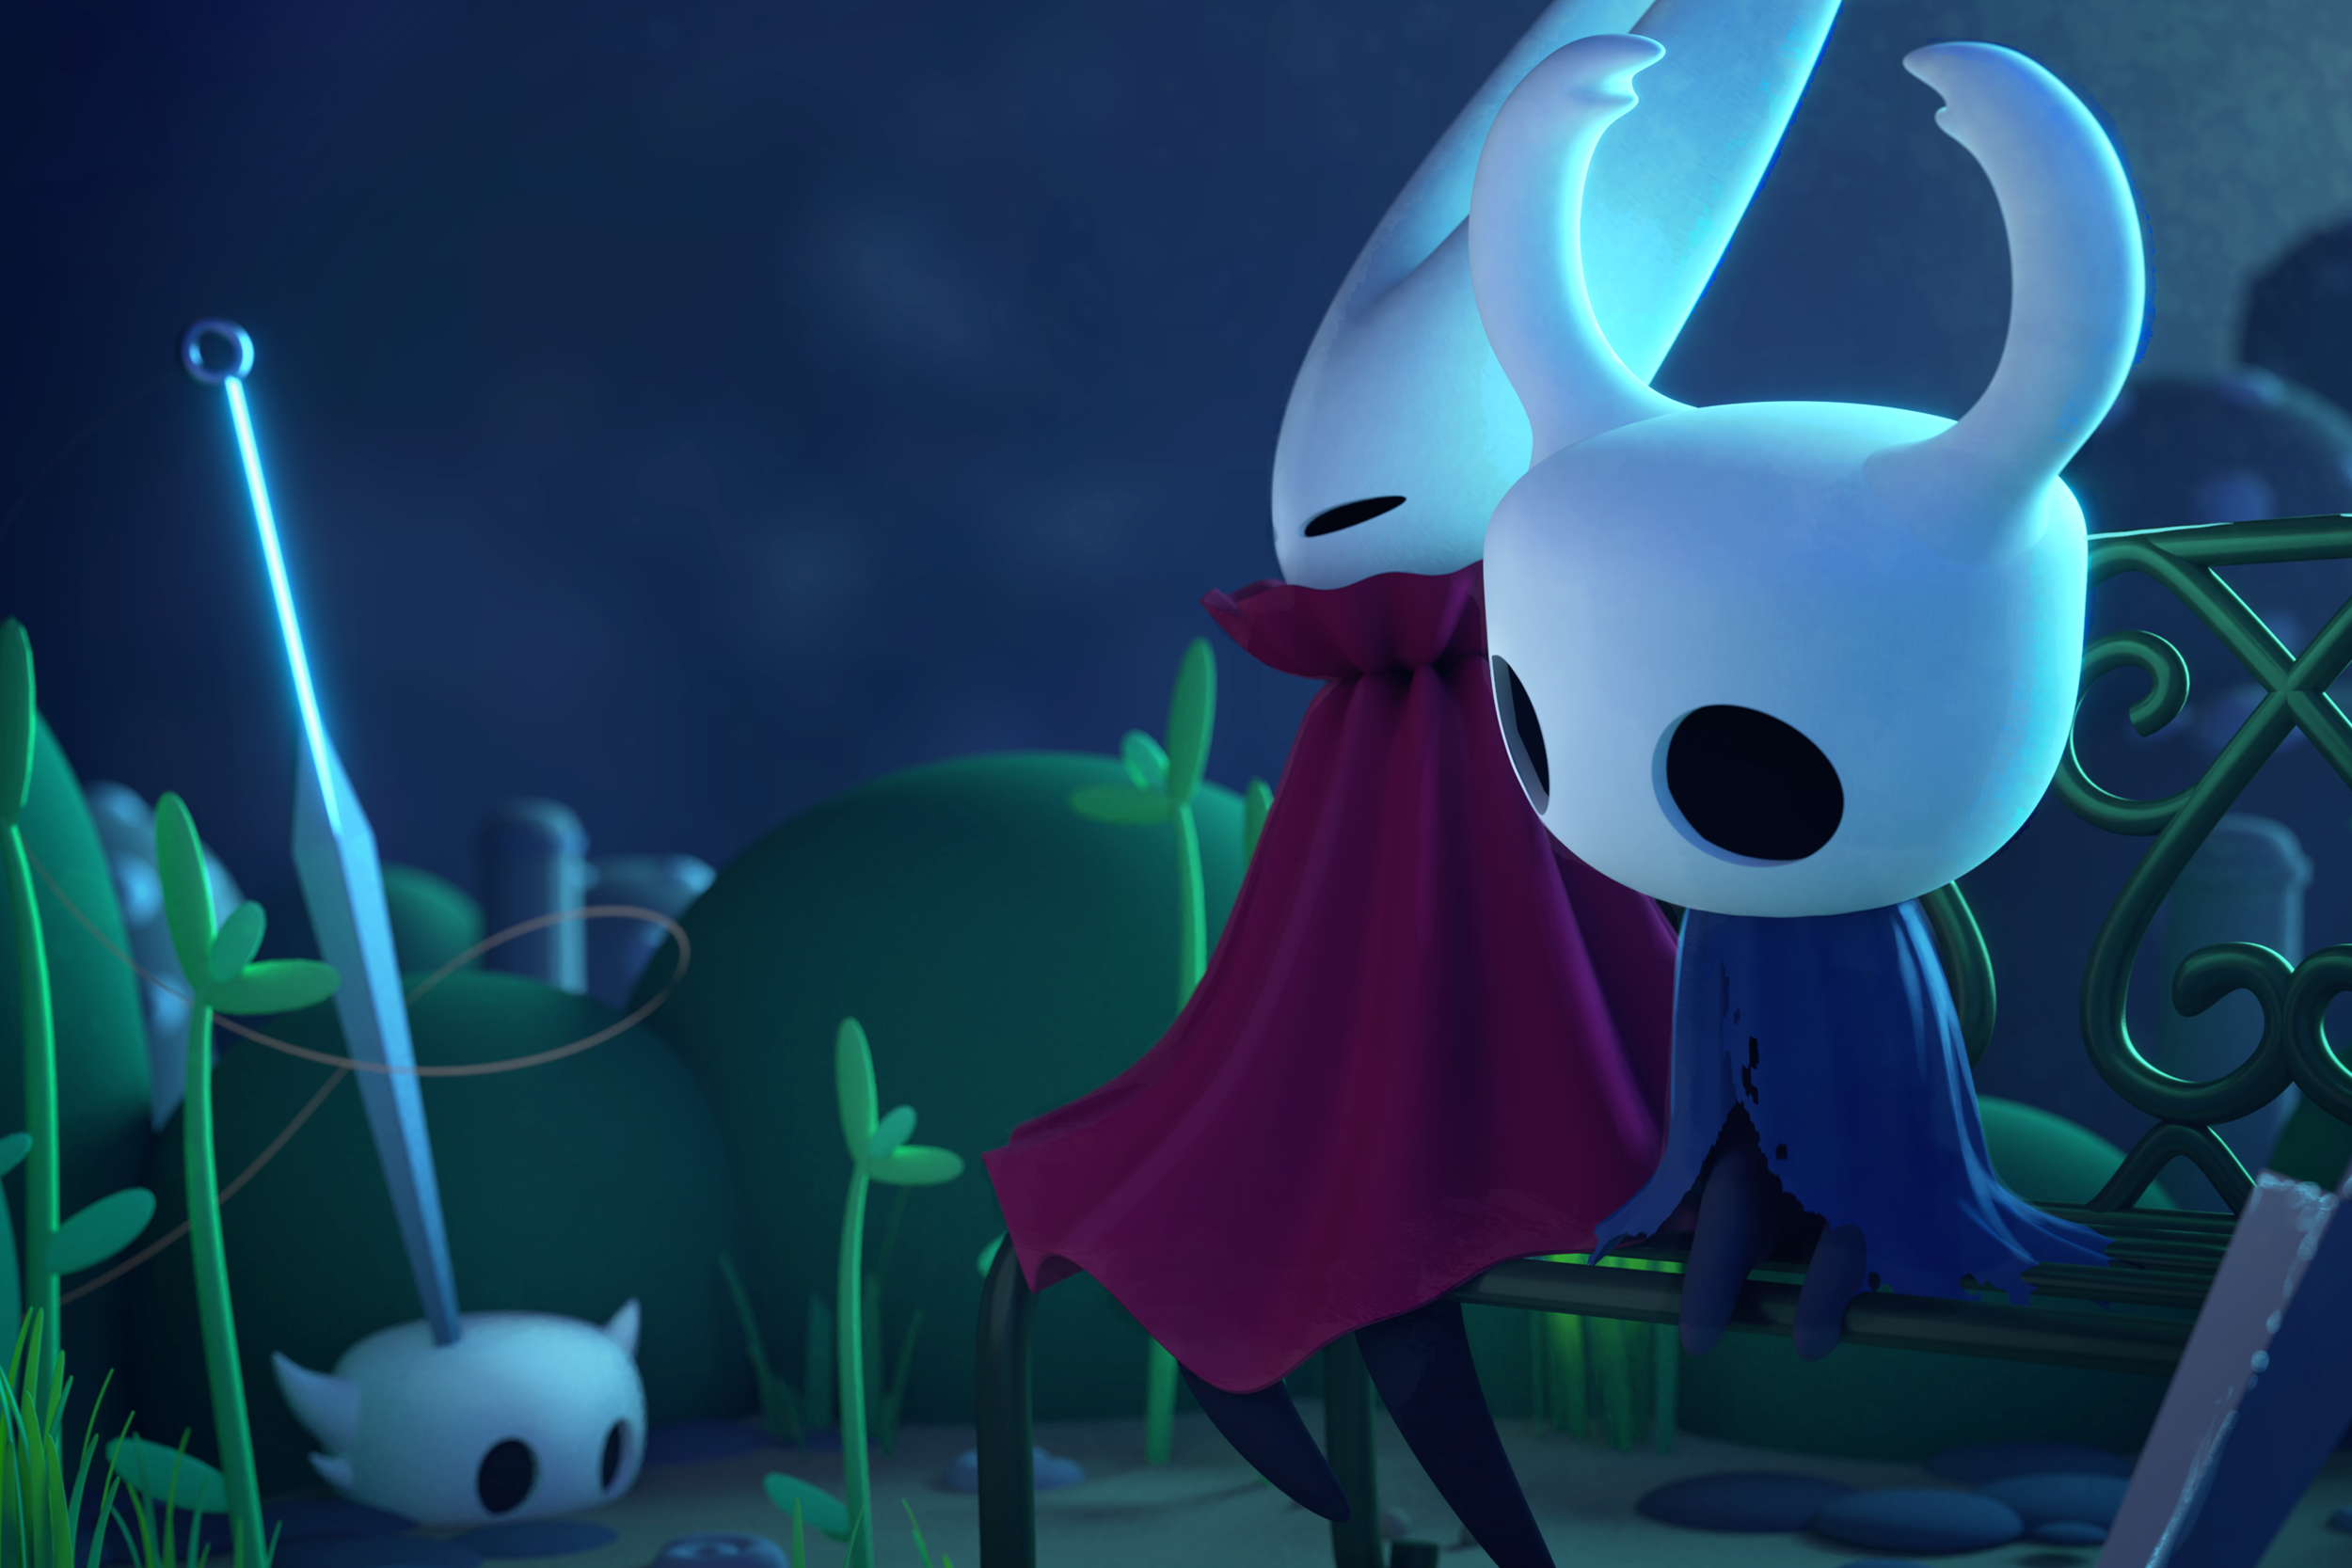 22 Hollow knight.png